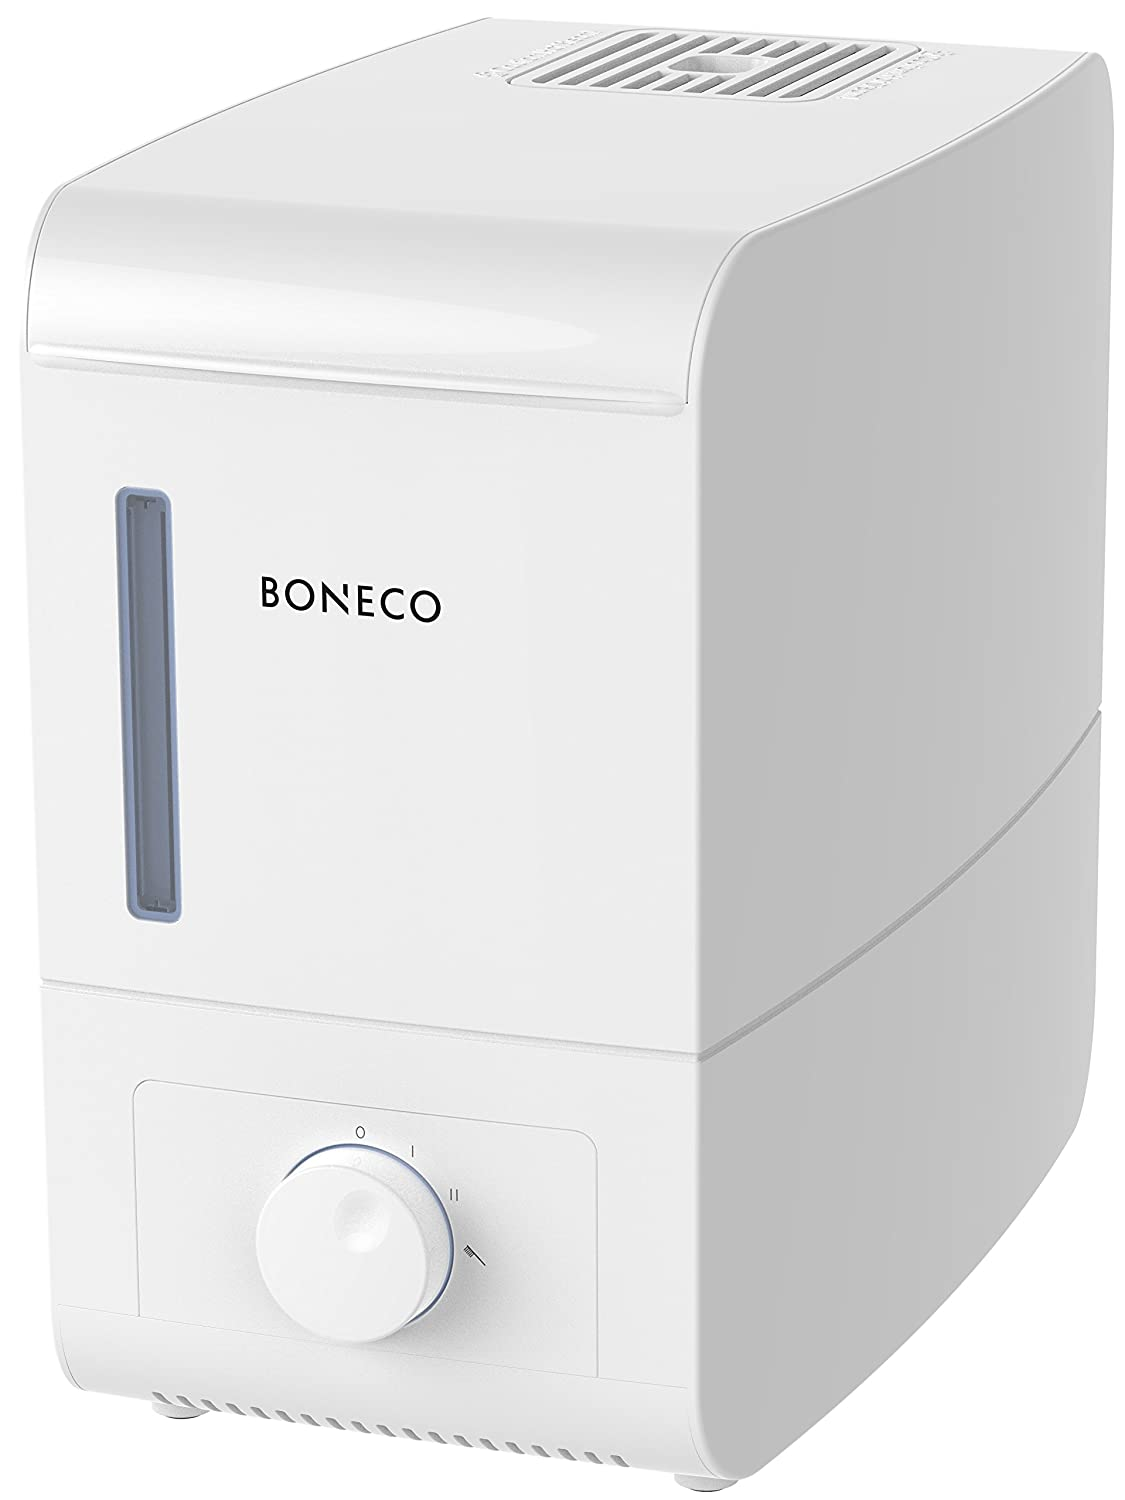 BONECO Steam Humidifier S200 with Cleaning Mode